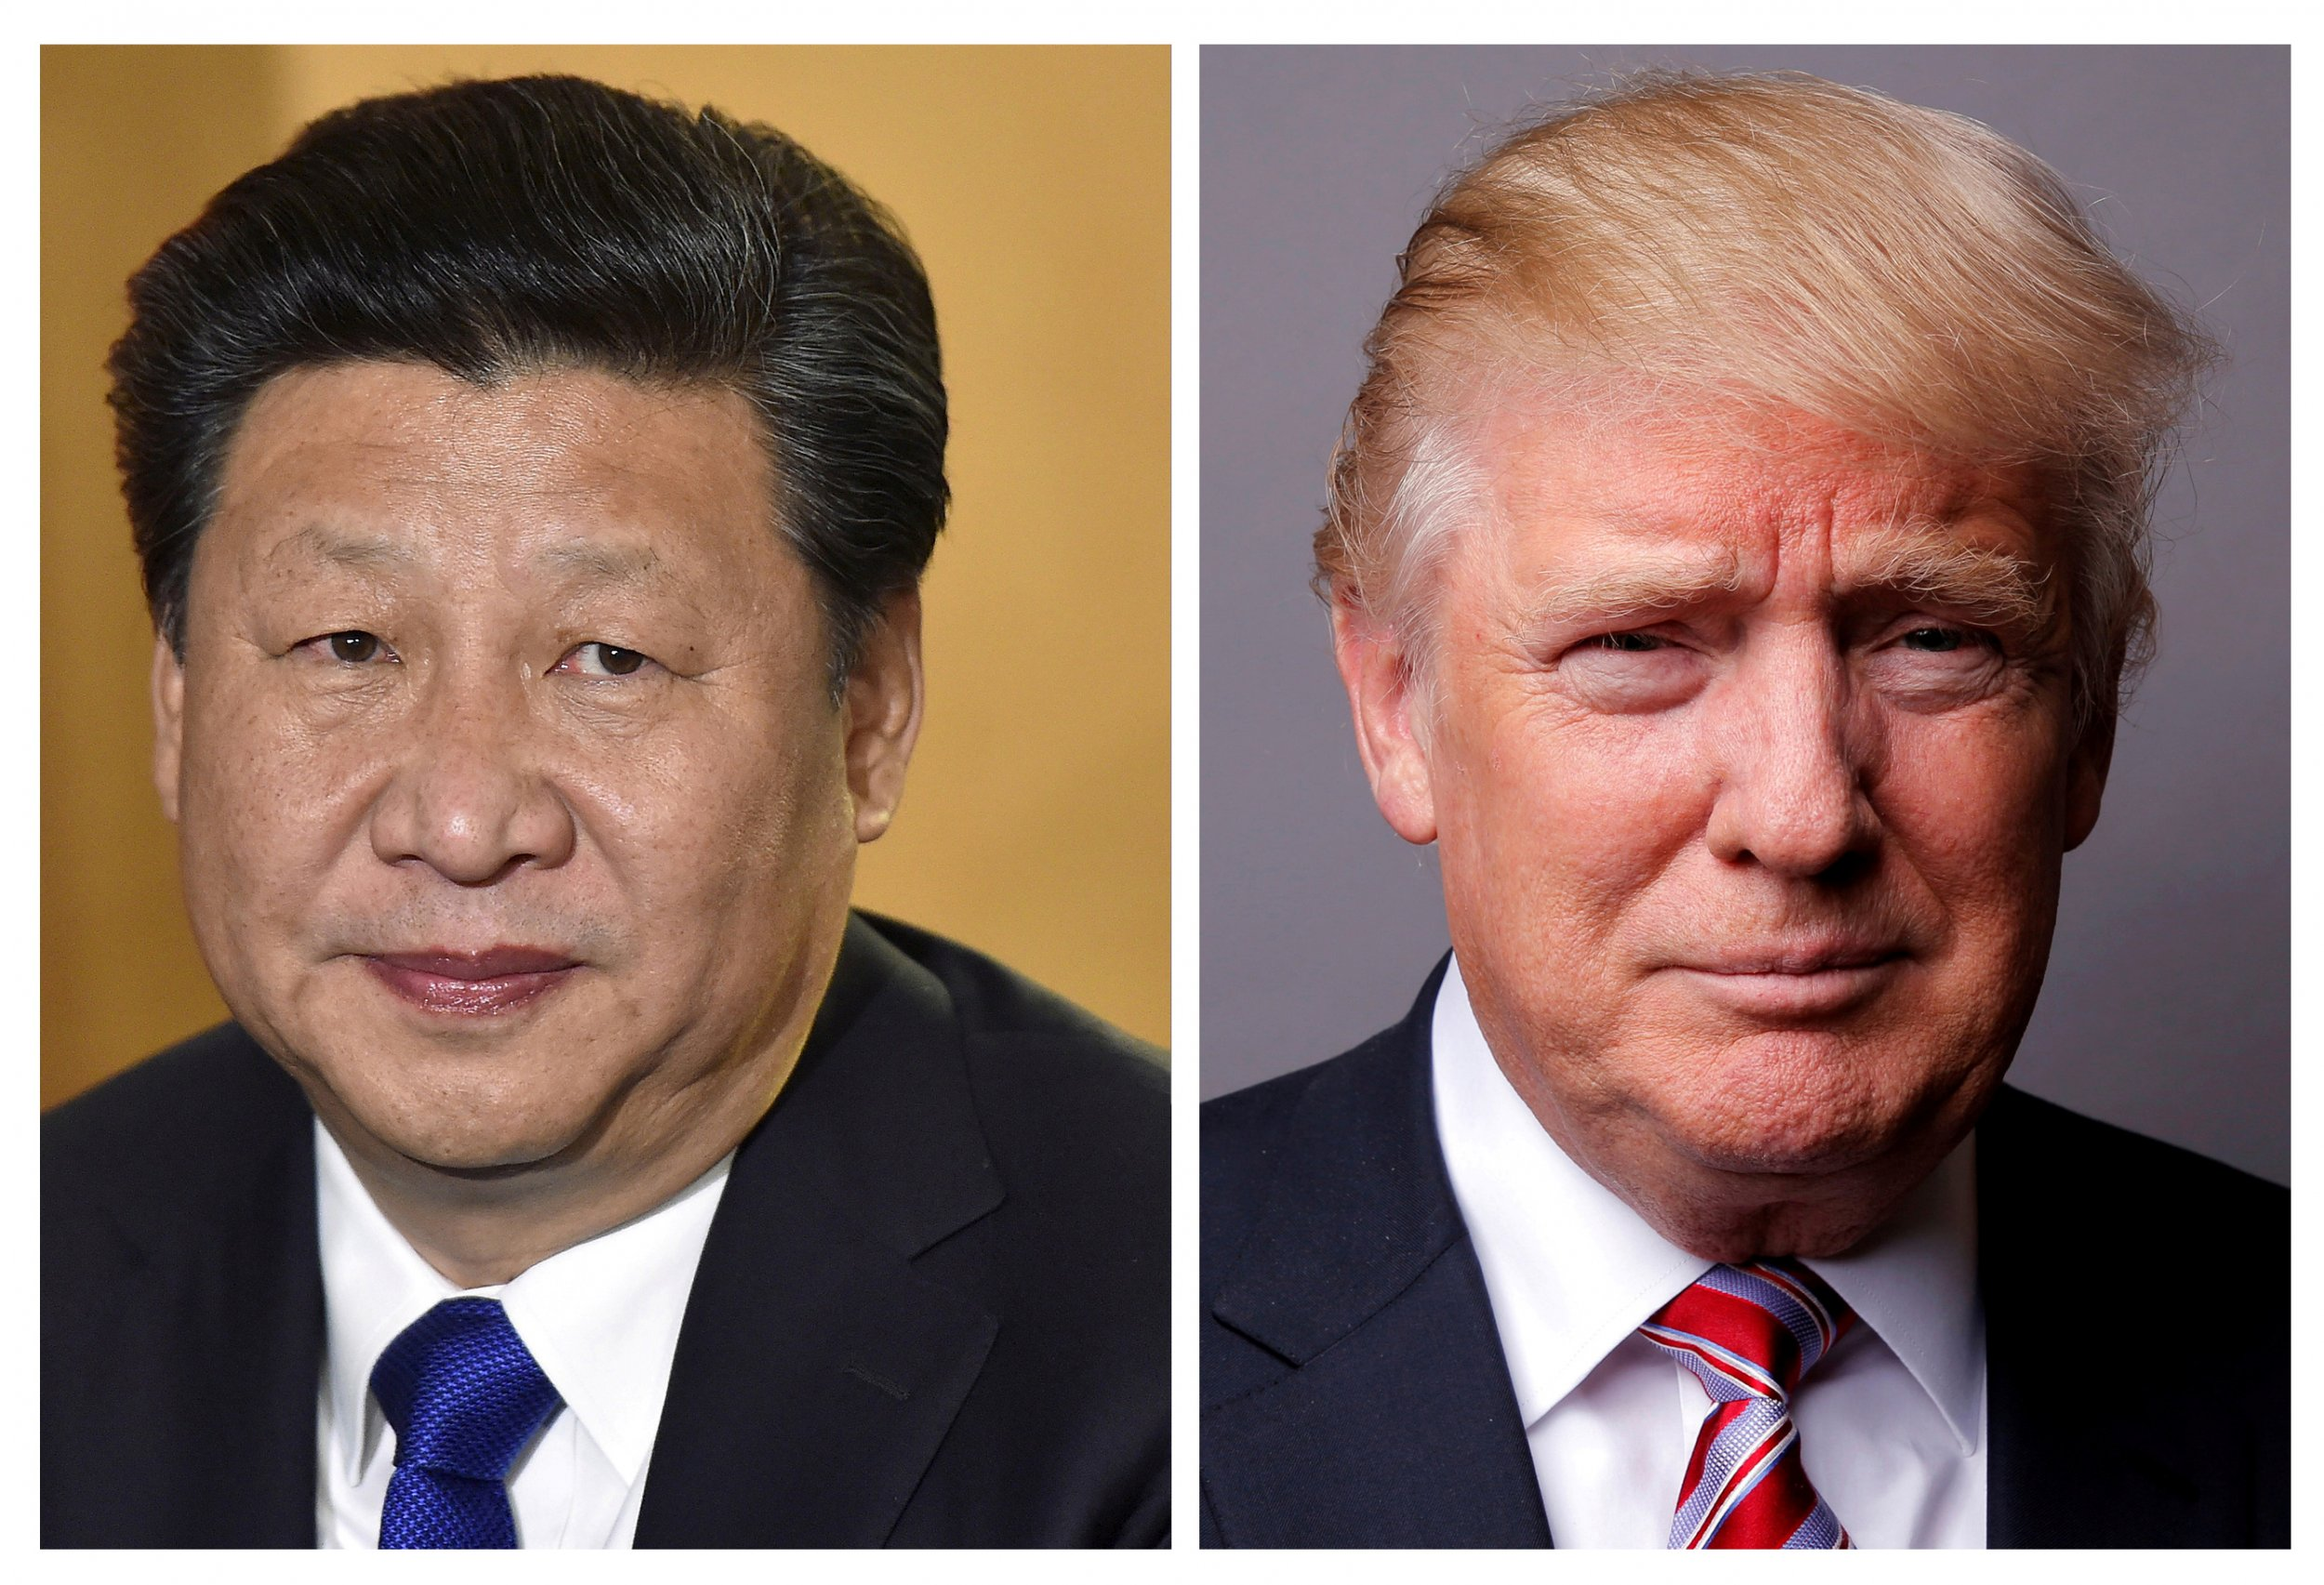 Trump and Xi Jinping joined picture